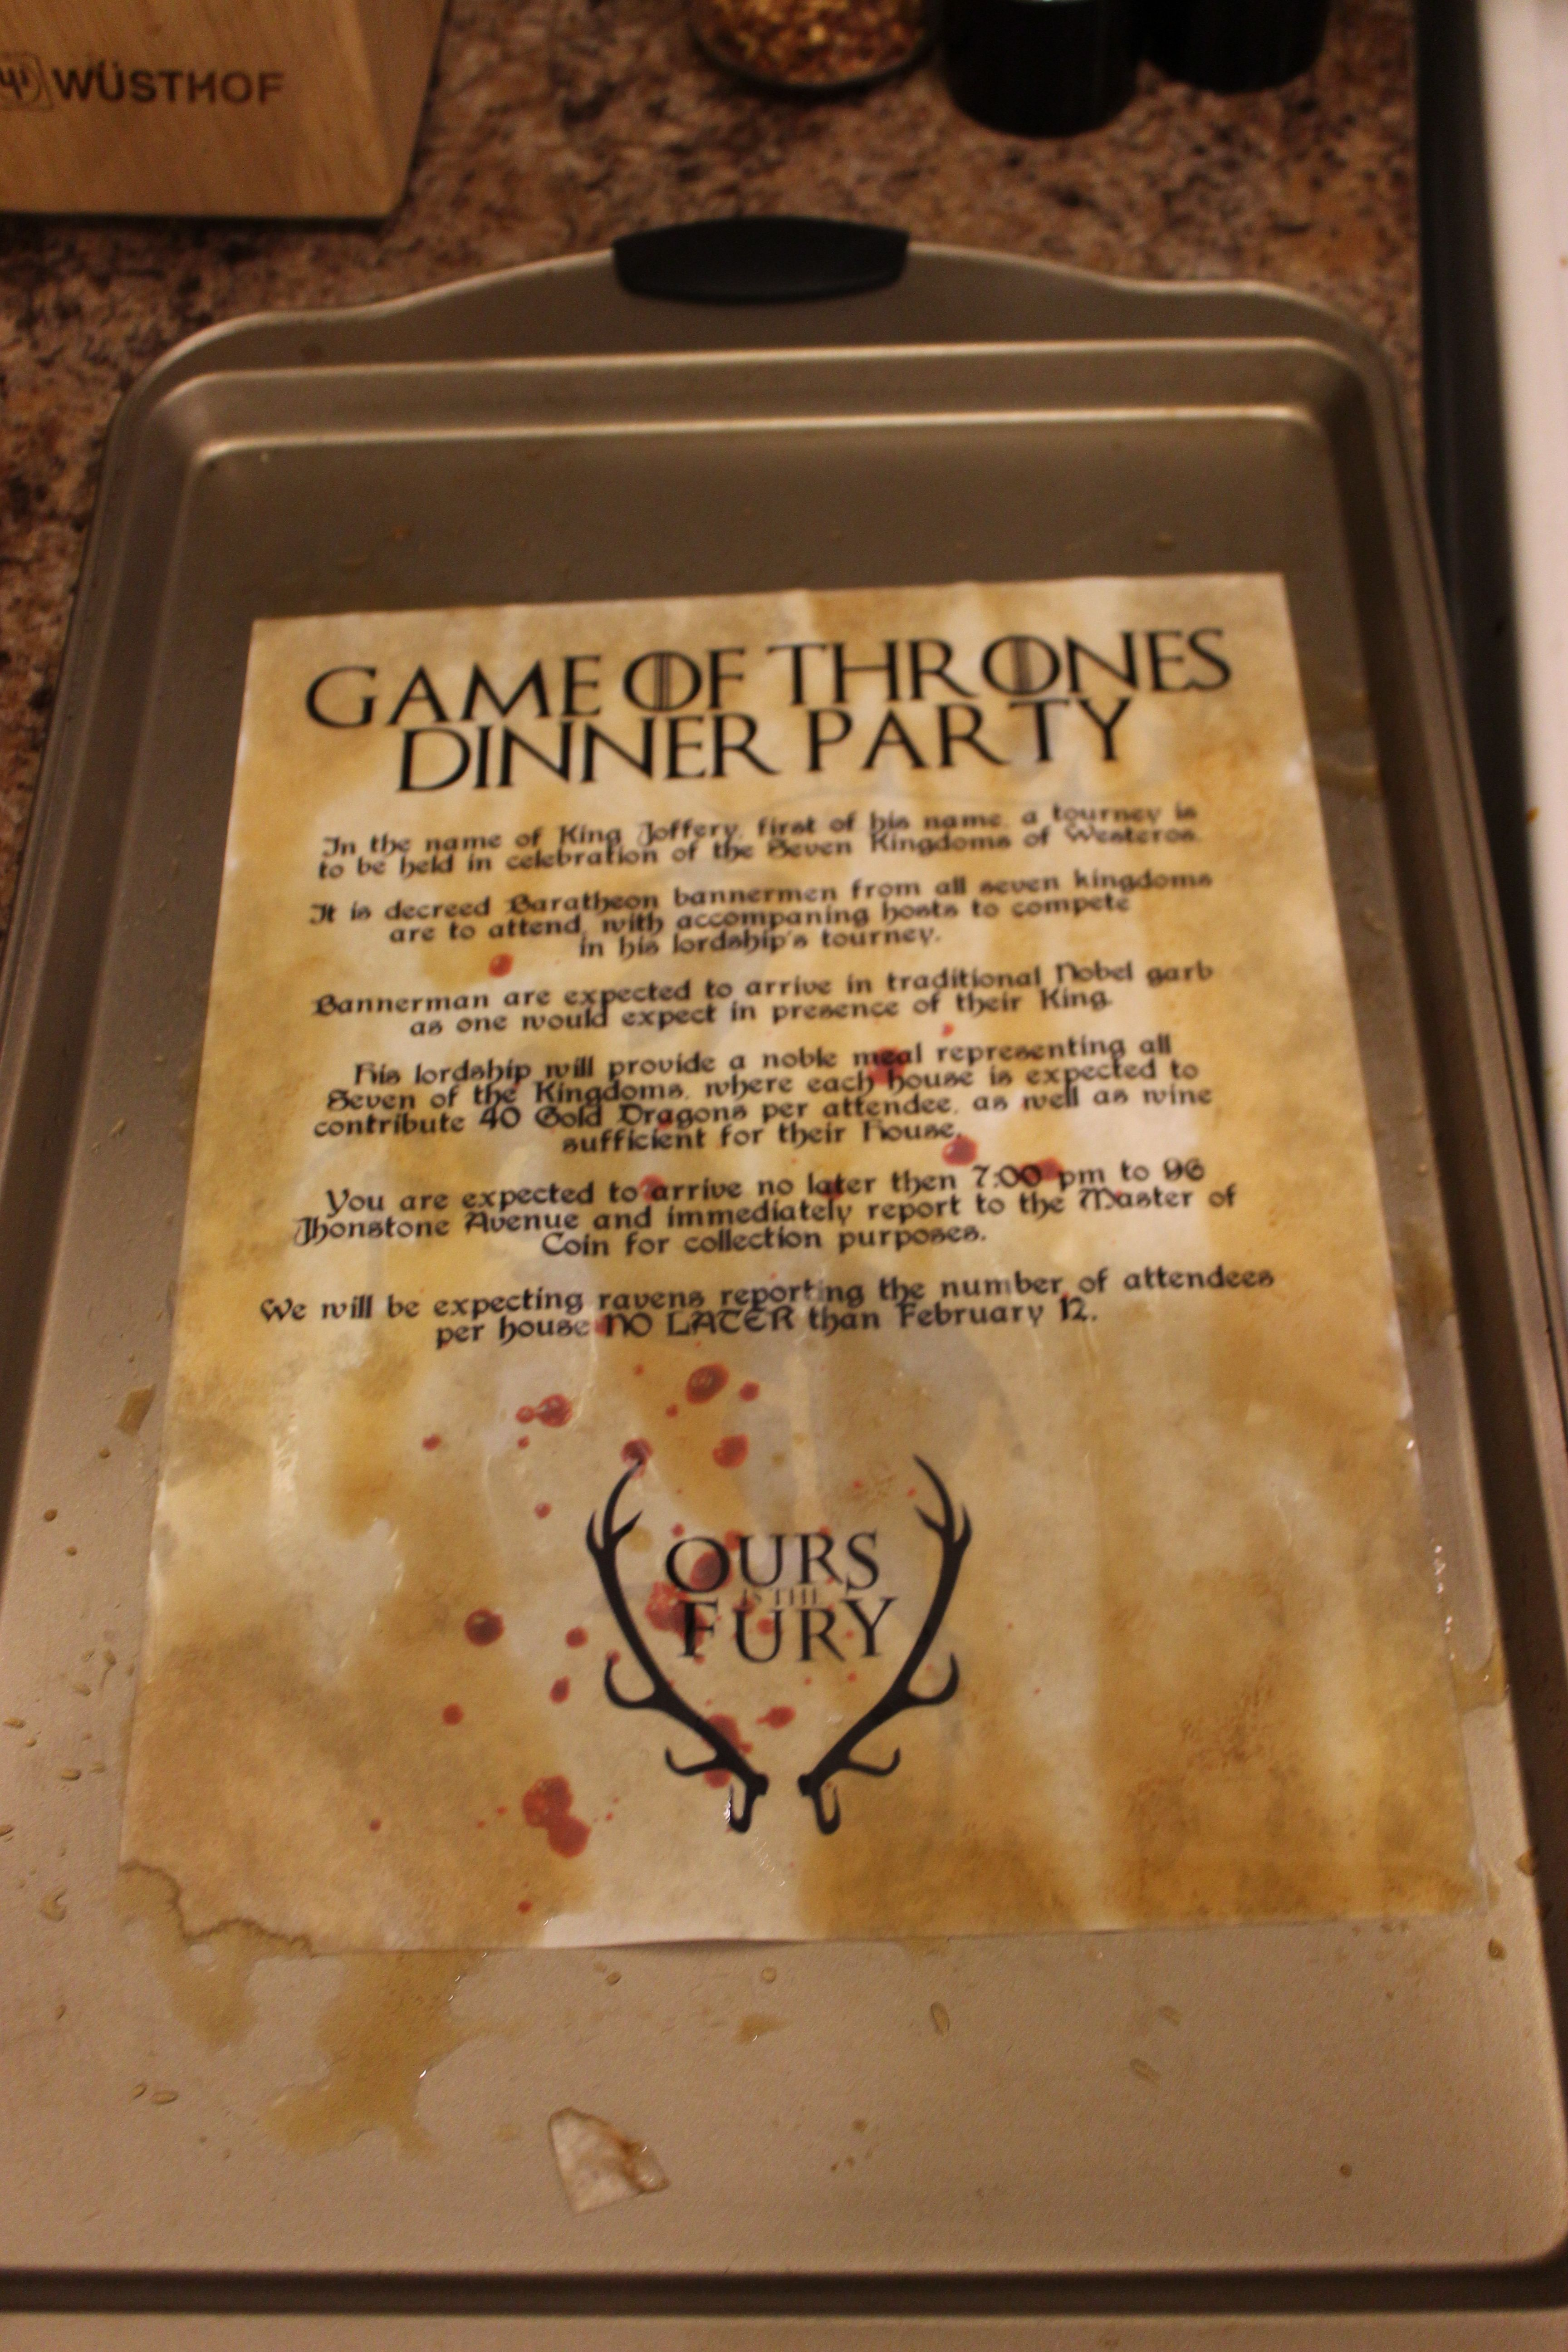 Game of Thrones Dinner Party Menu #GoT | Game of Thrones Dinner ...